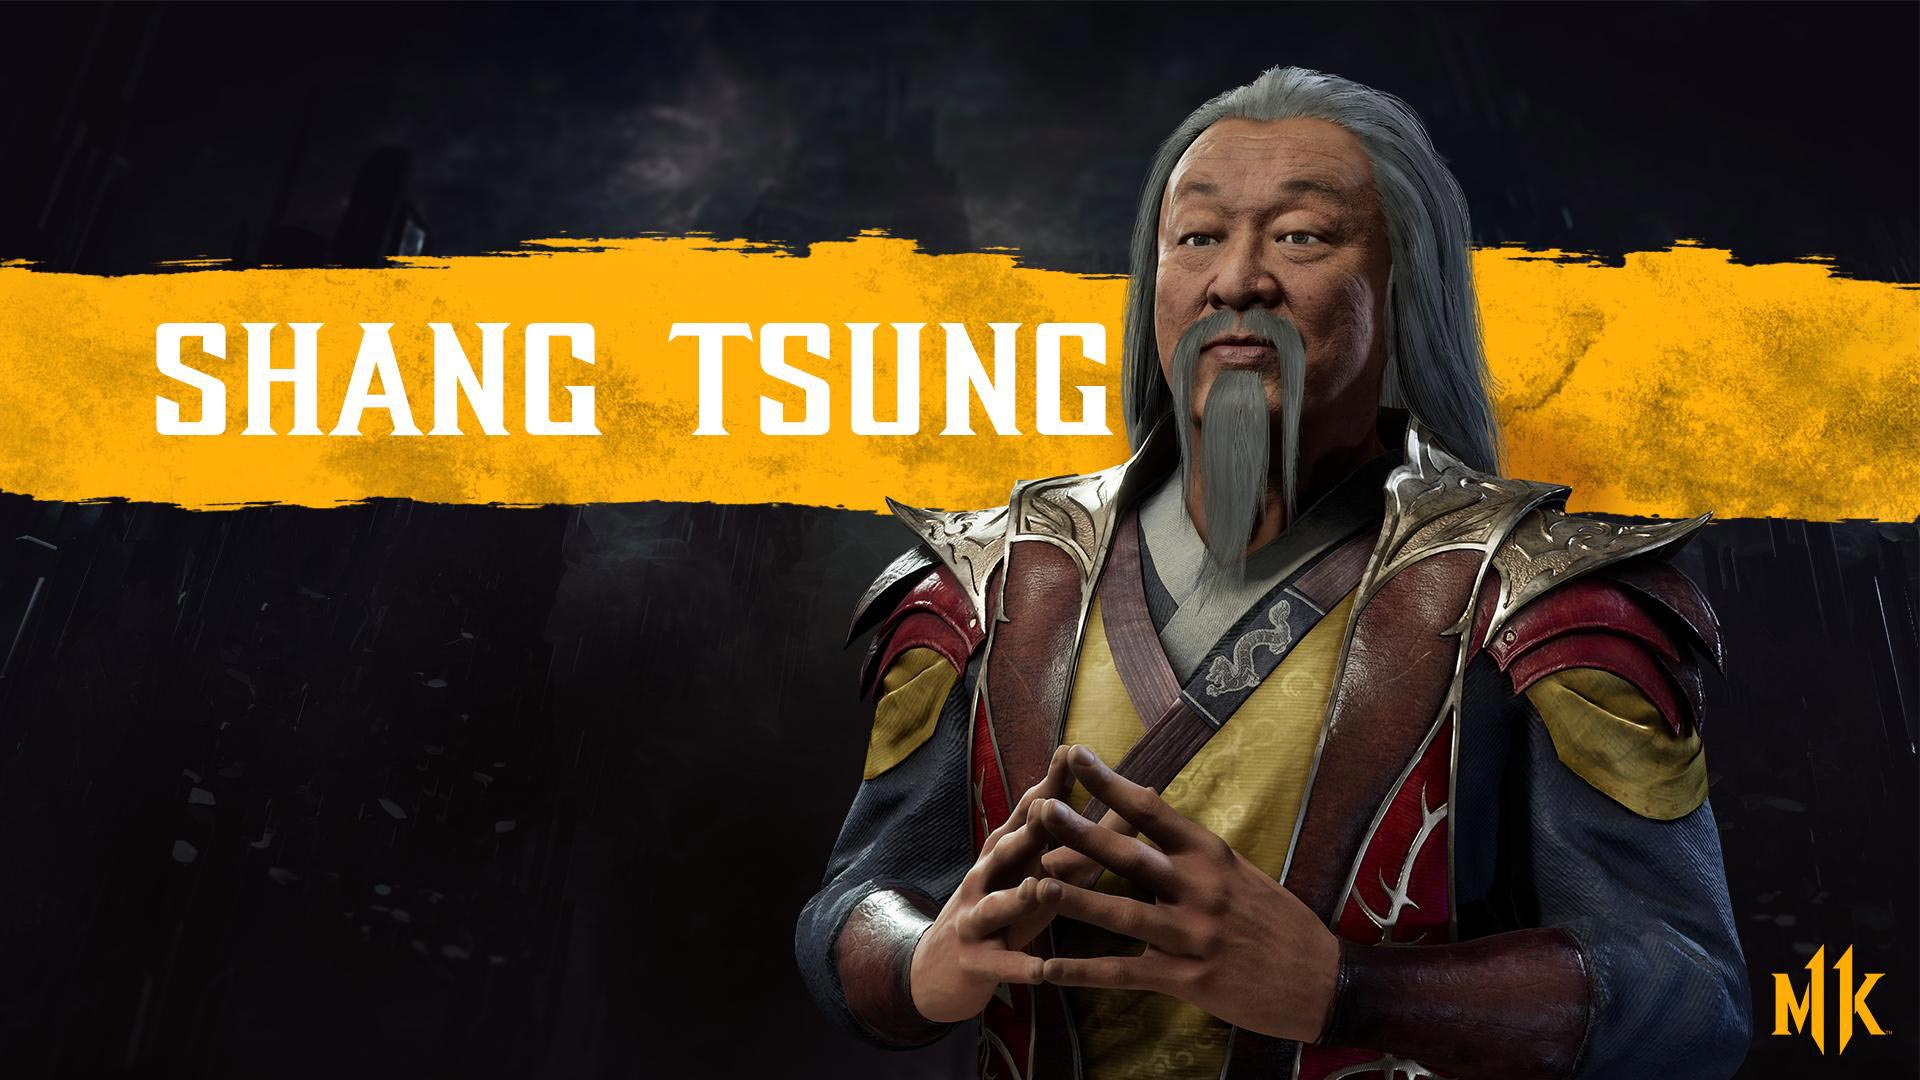 Shang Tsung in Mortal Kombat 11 1 out of 4 image gallery